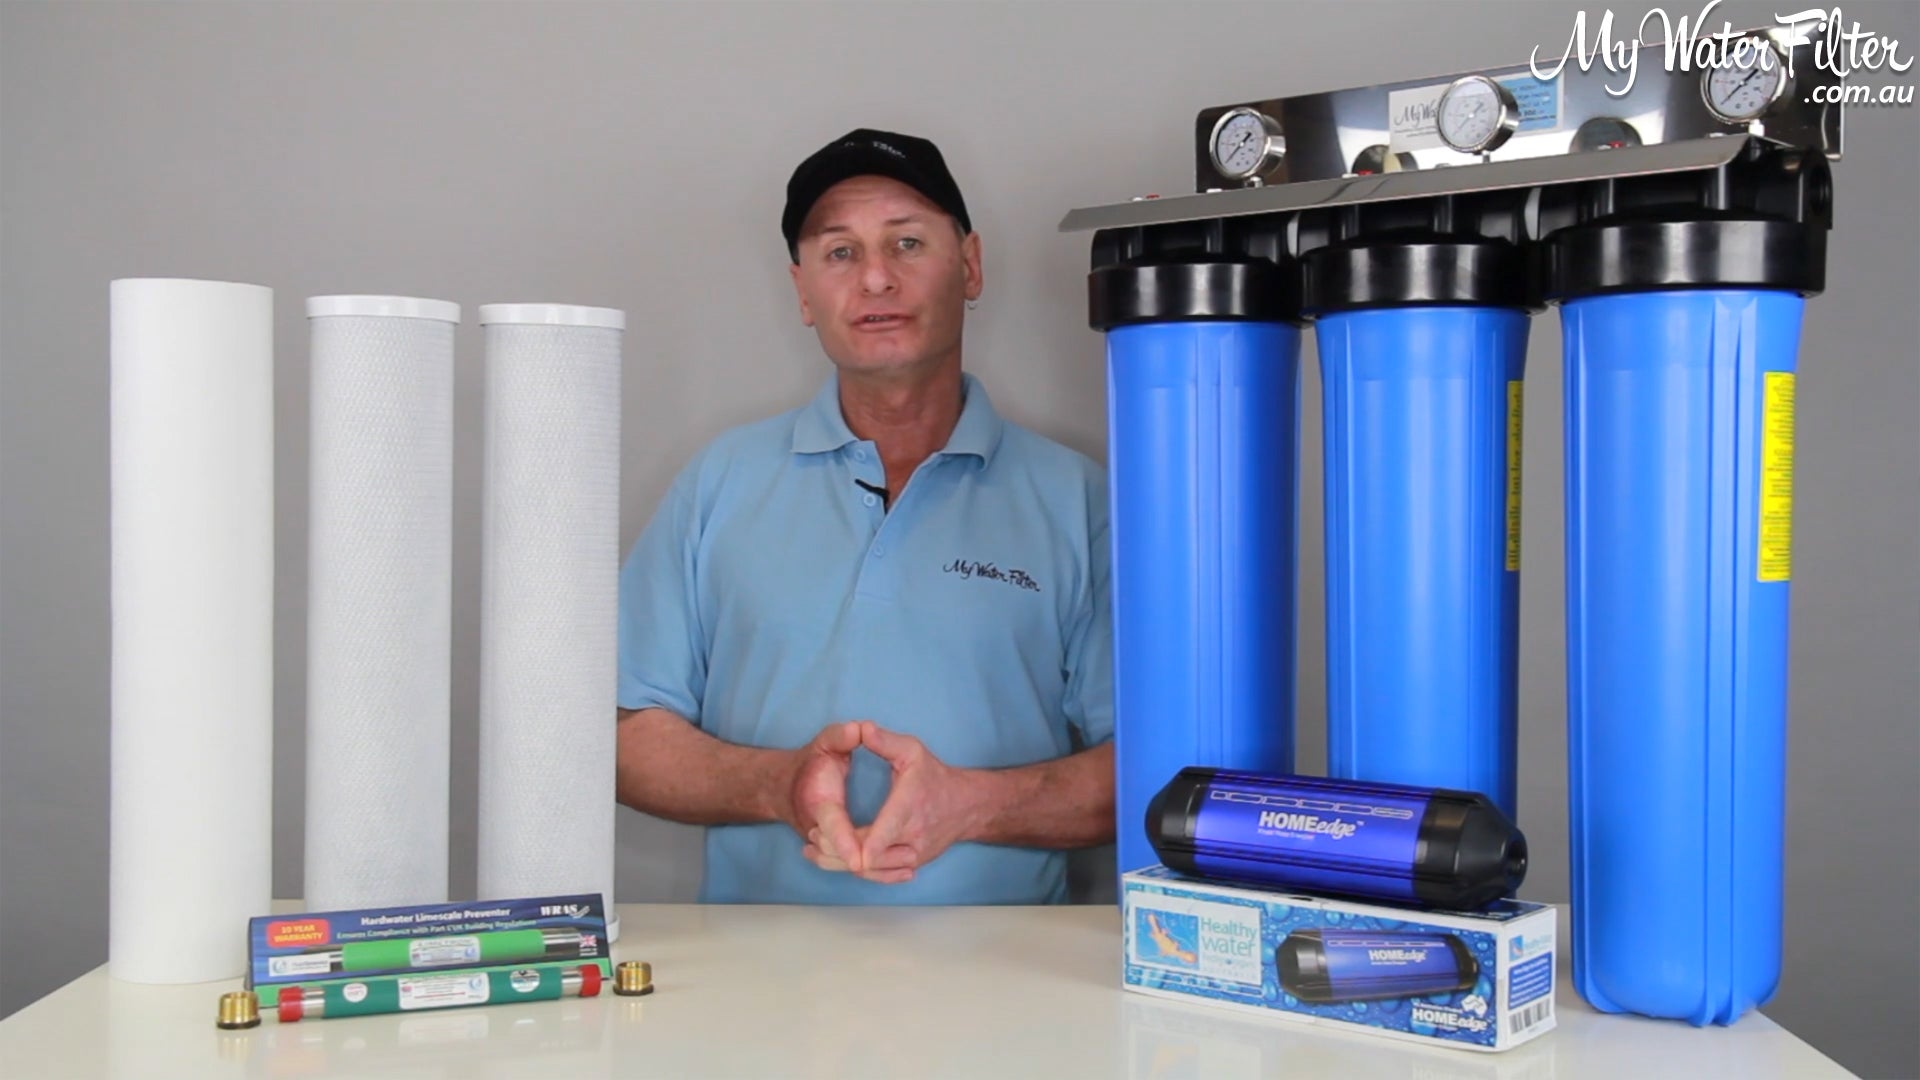 My Water Filter Whole House Water Filtration System